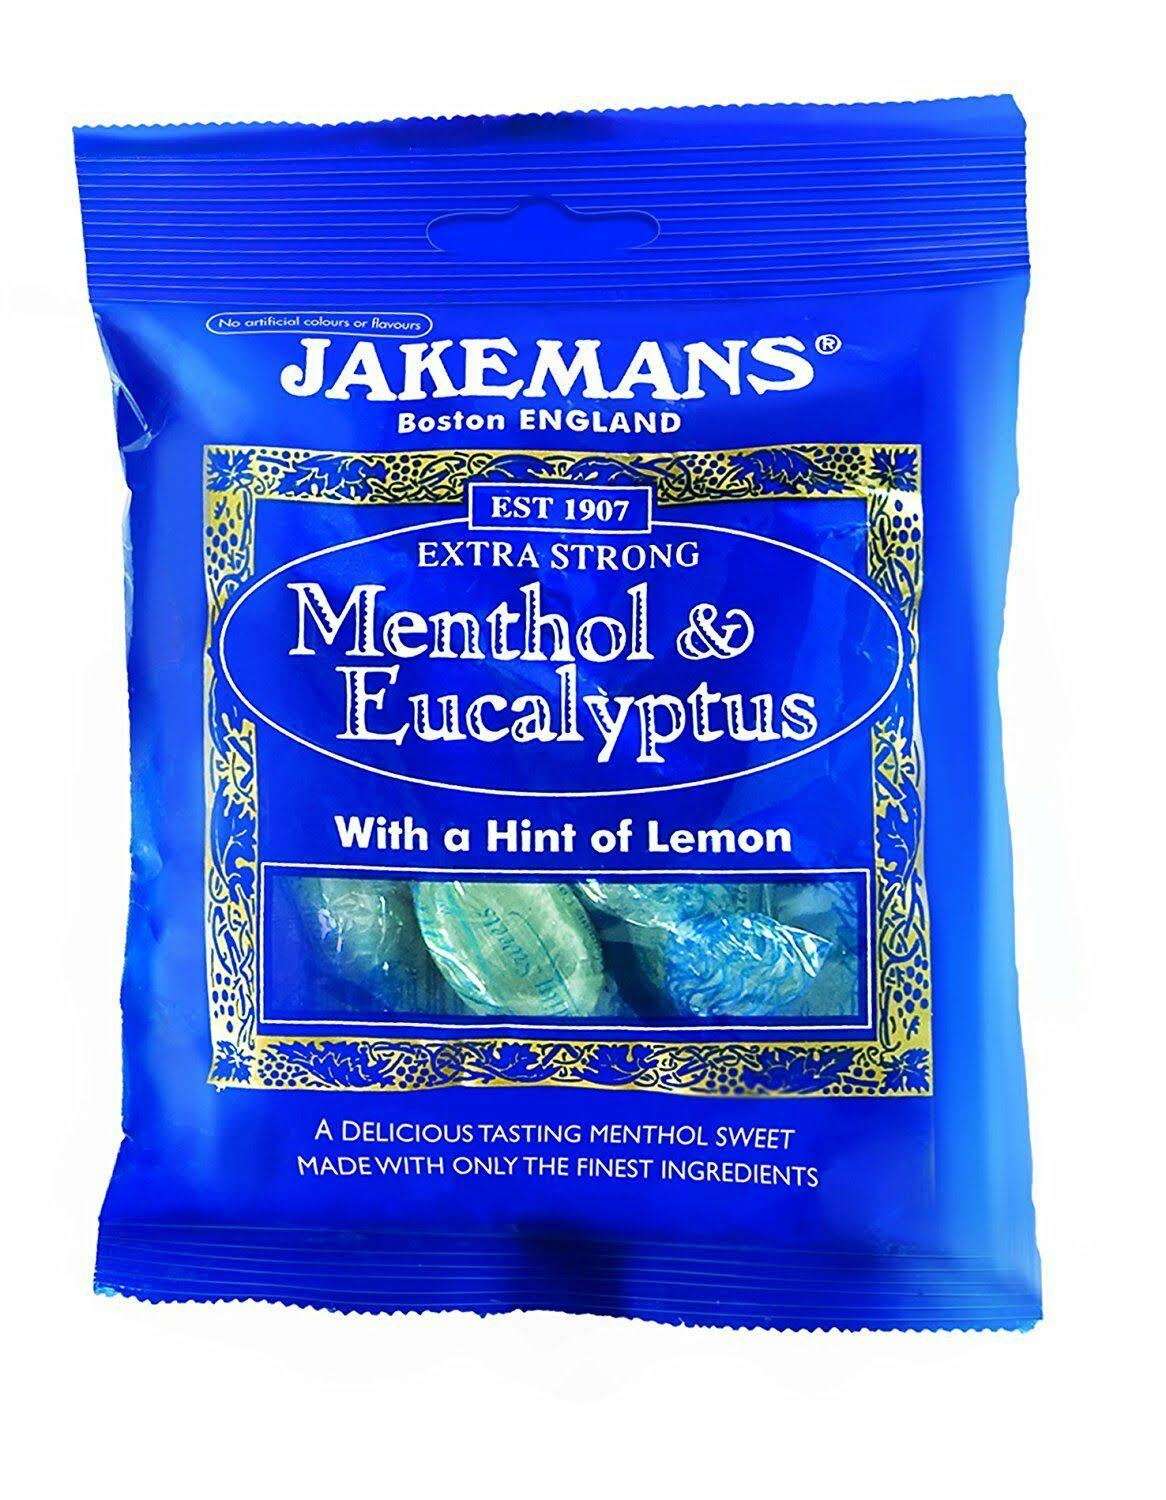 Jakemans Menthol and Eucalyptus Sweets - 100g